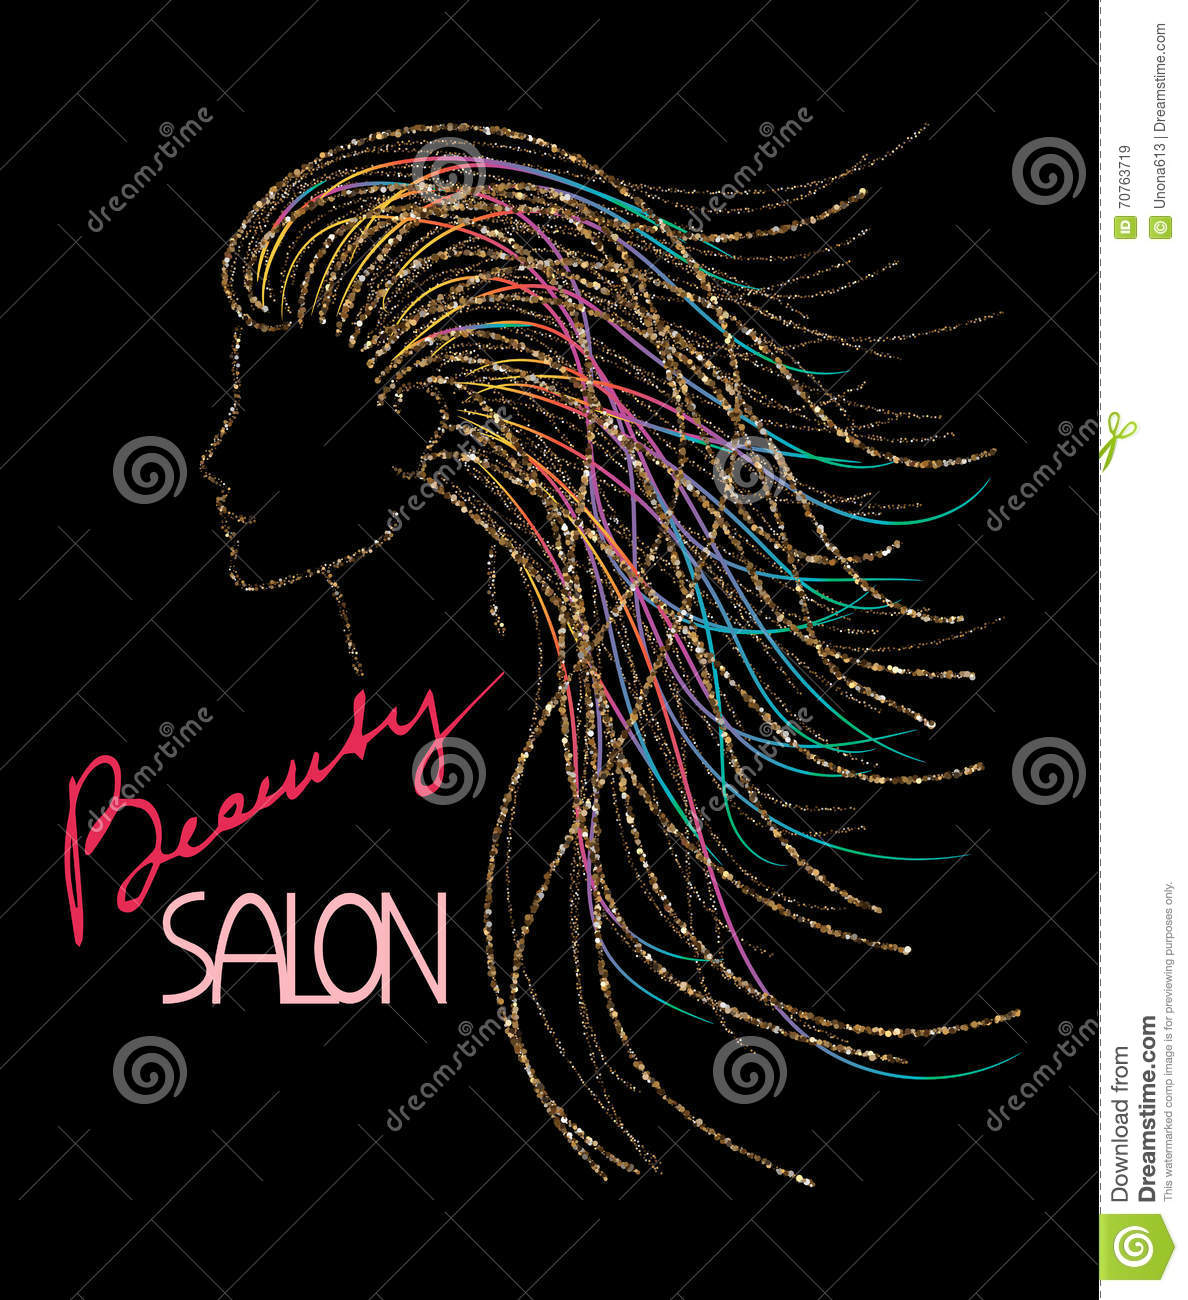 Salon concept logo vector illustration for Abstract beauty salon